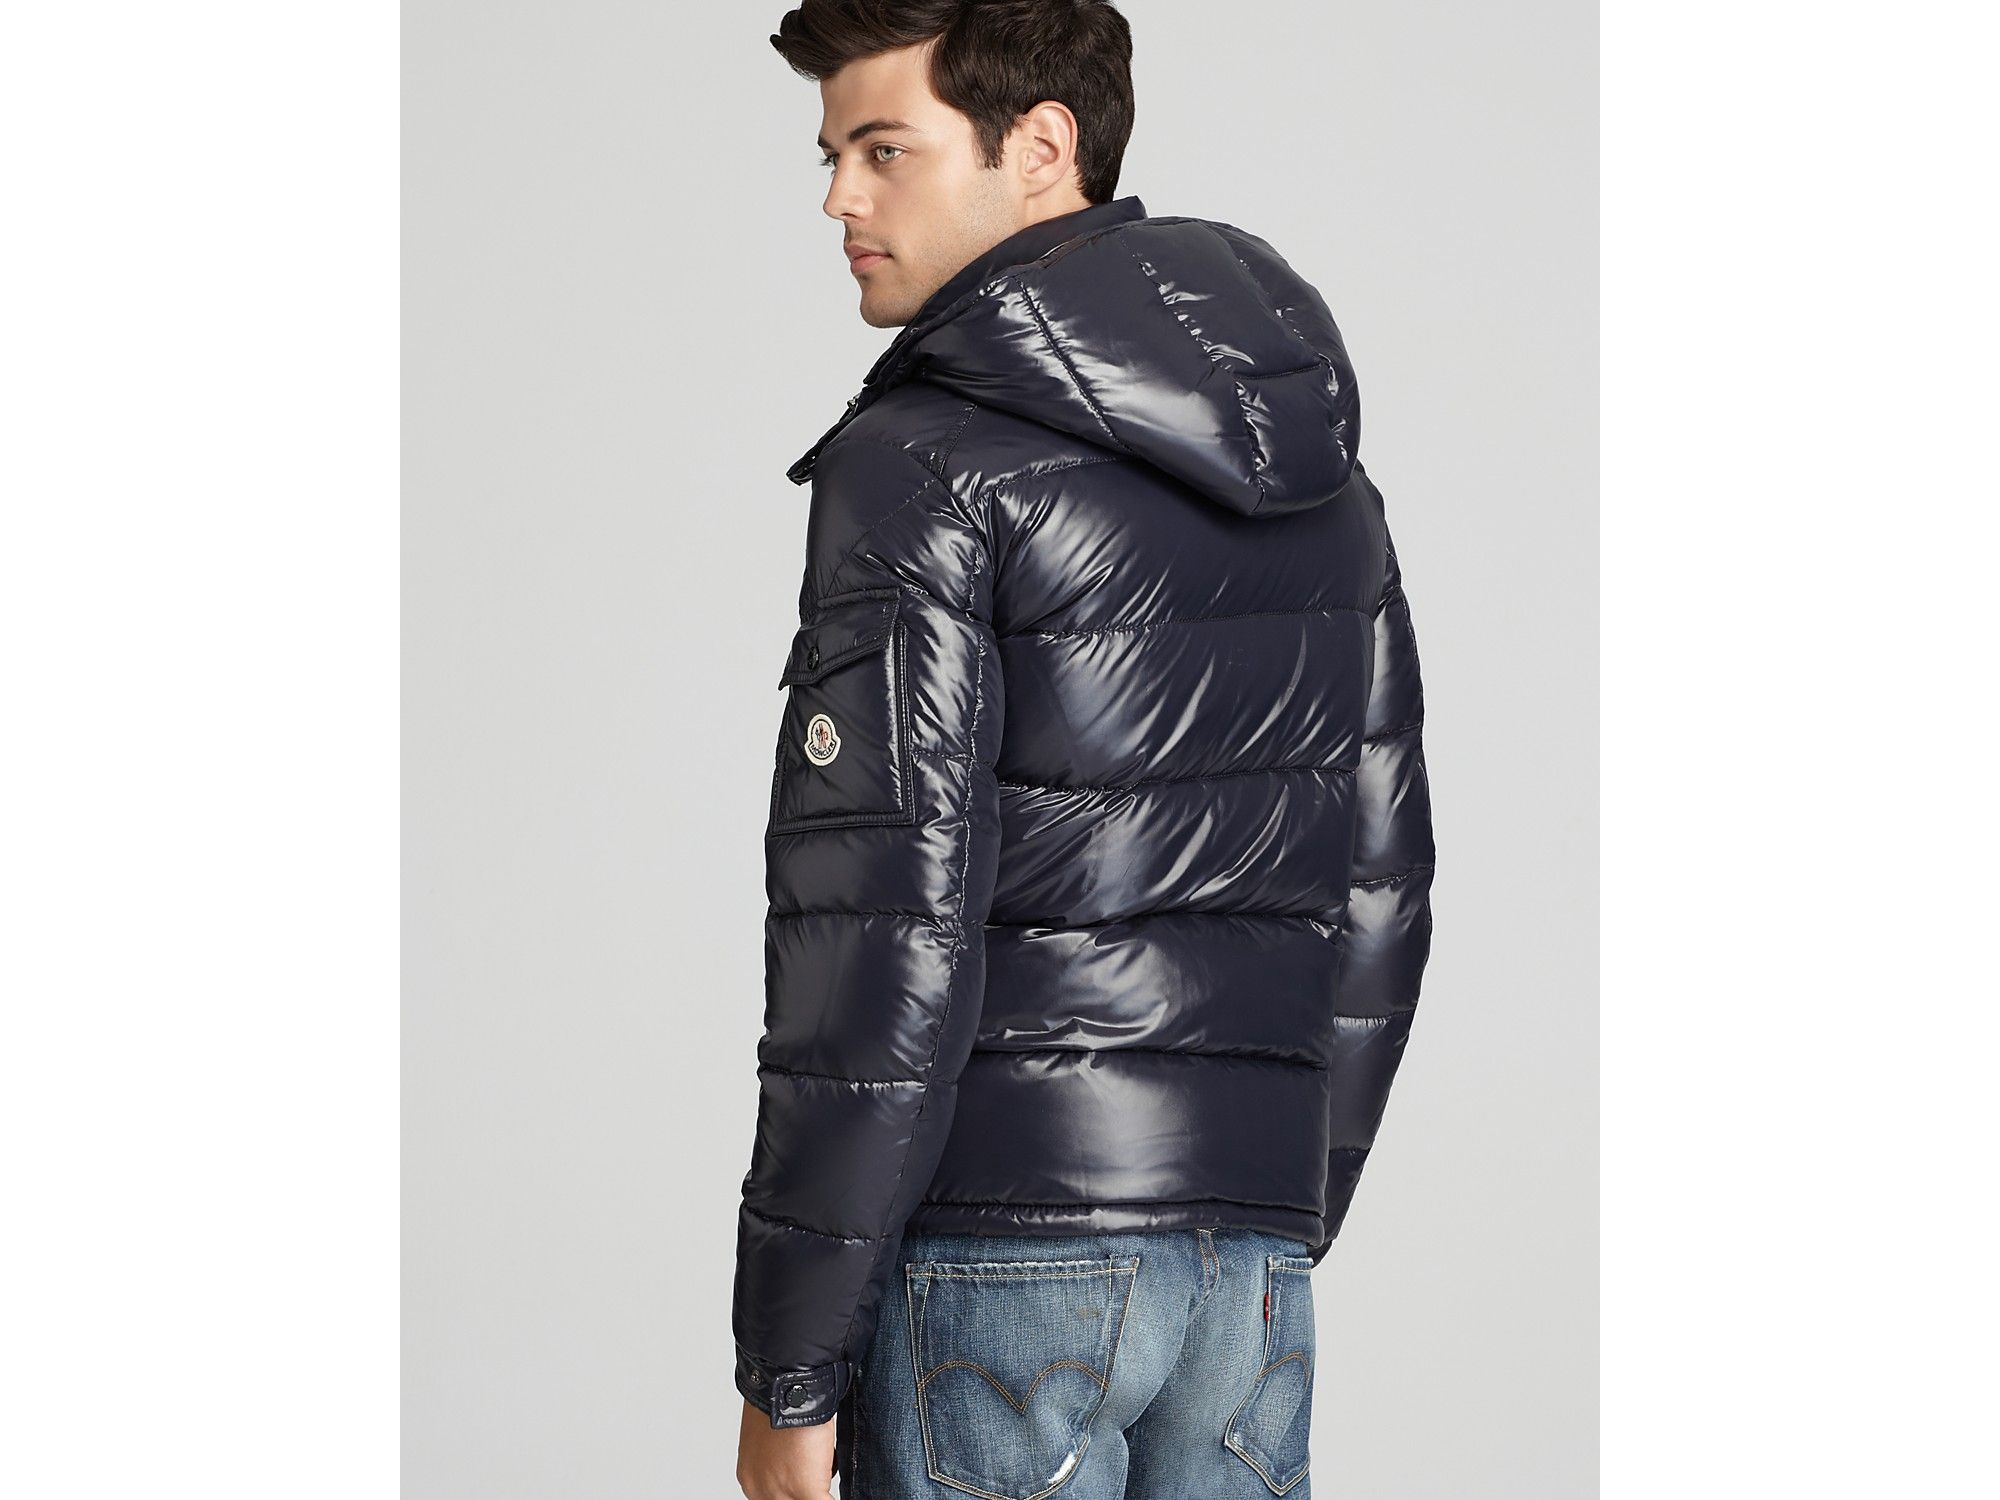 Image result for moncler maya (With images) Chłopcy